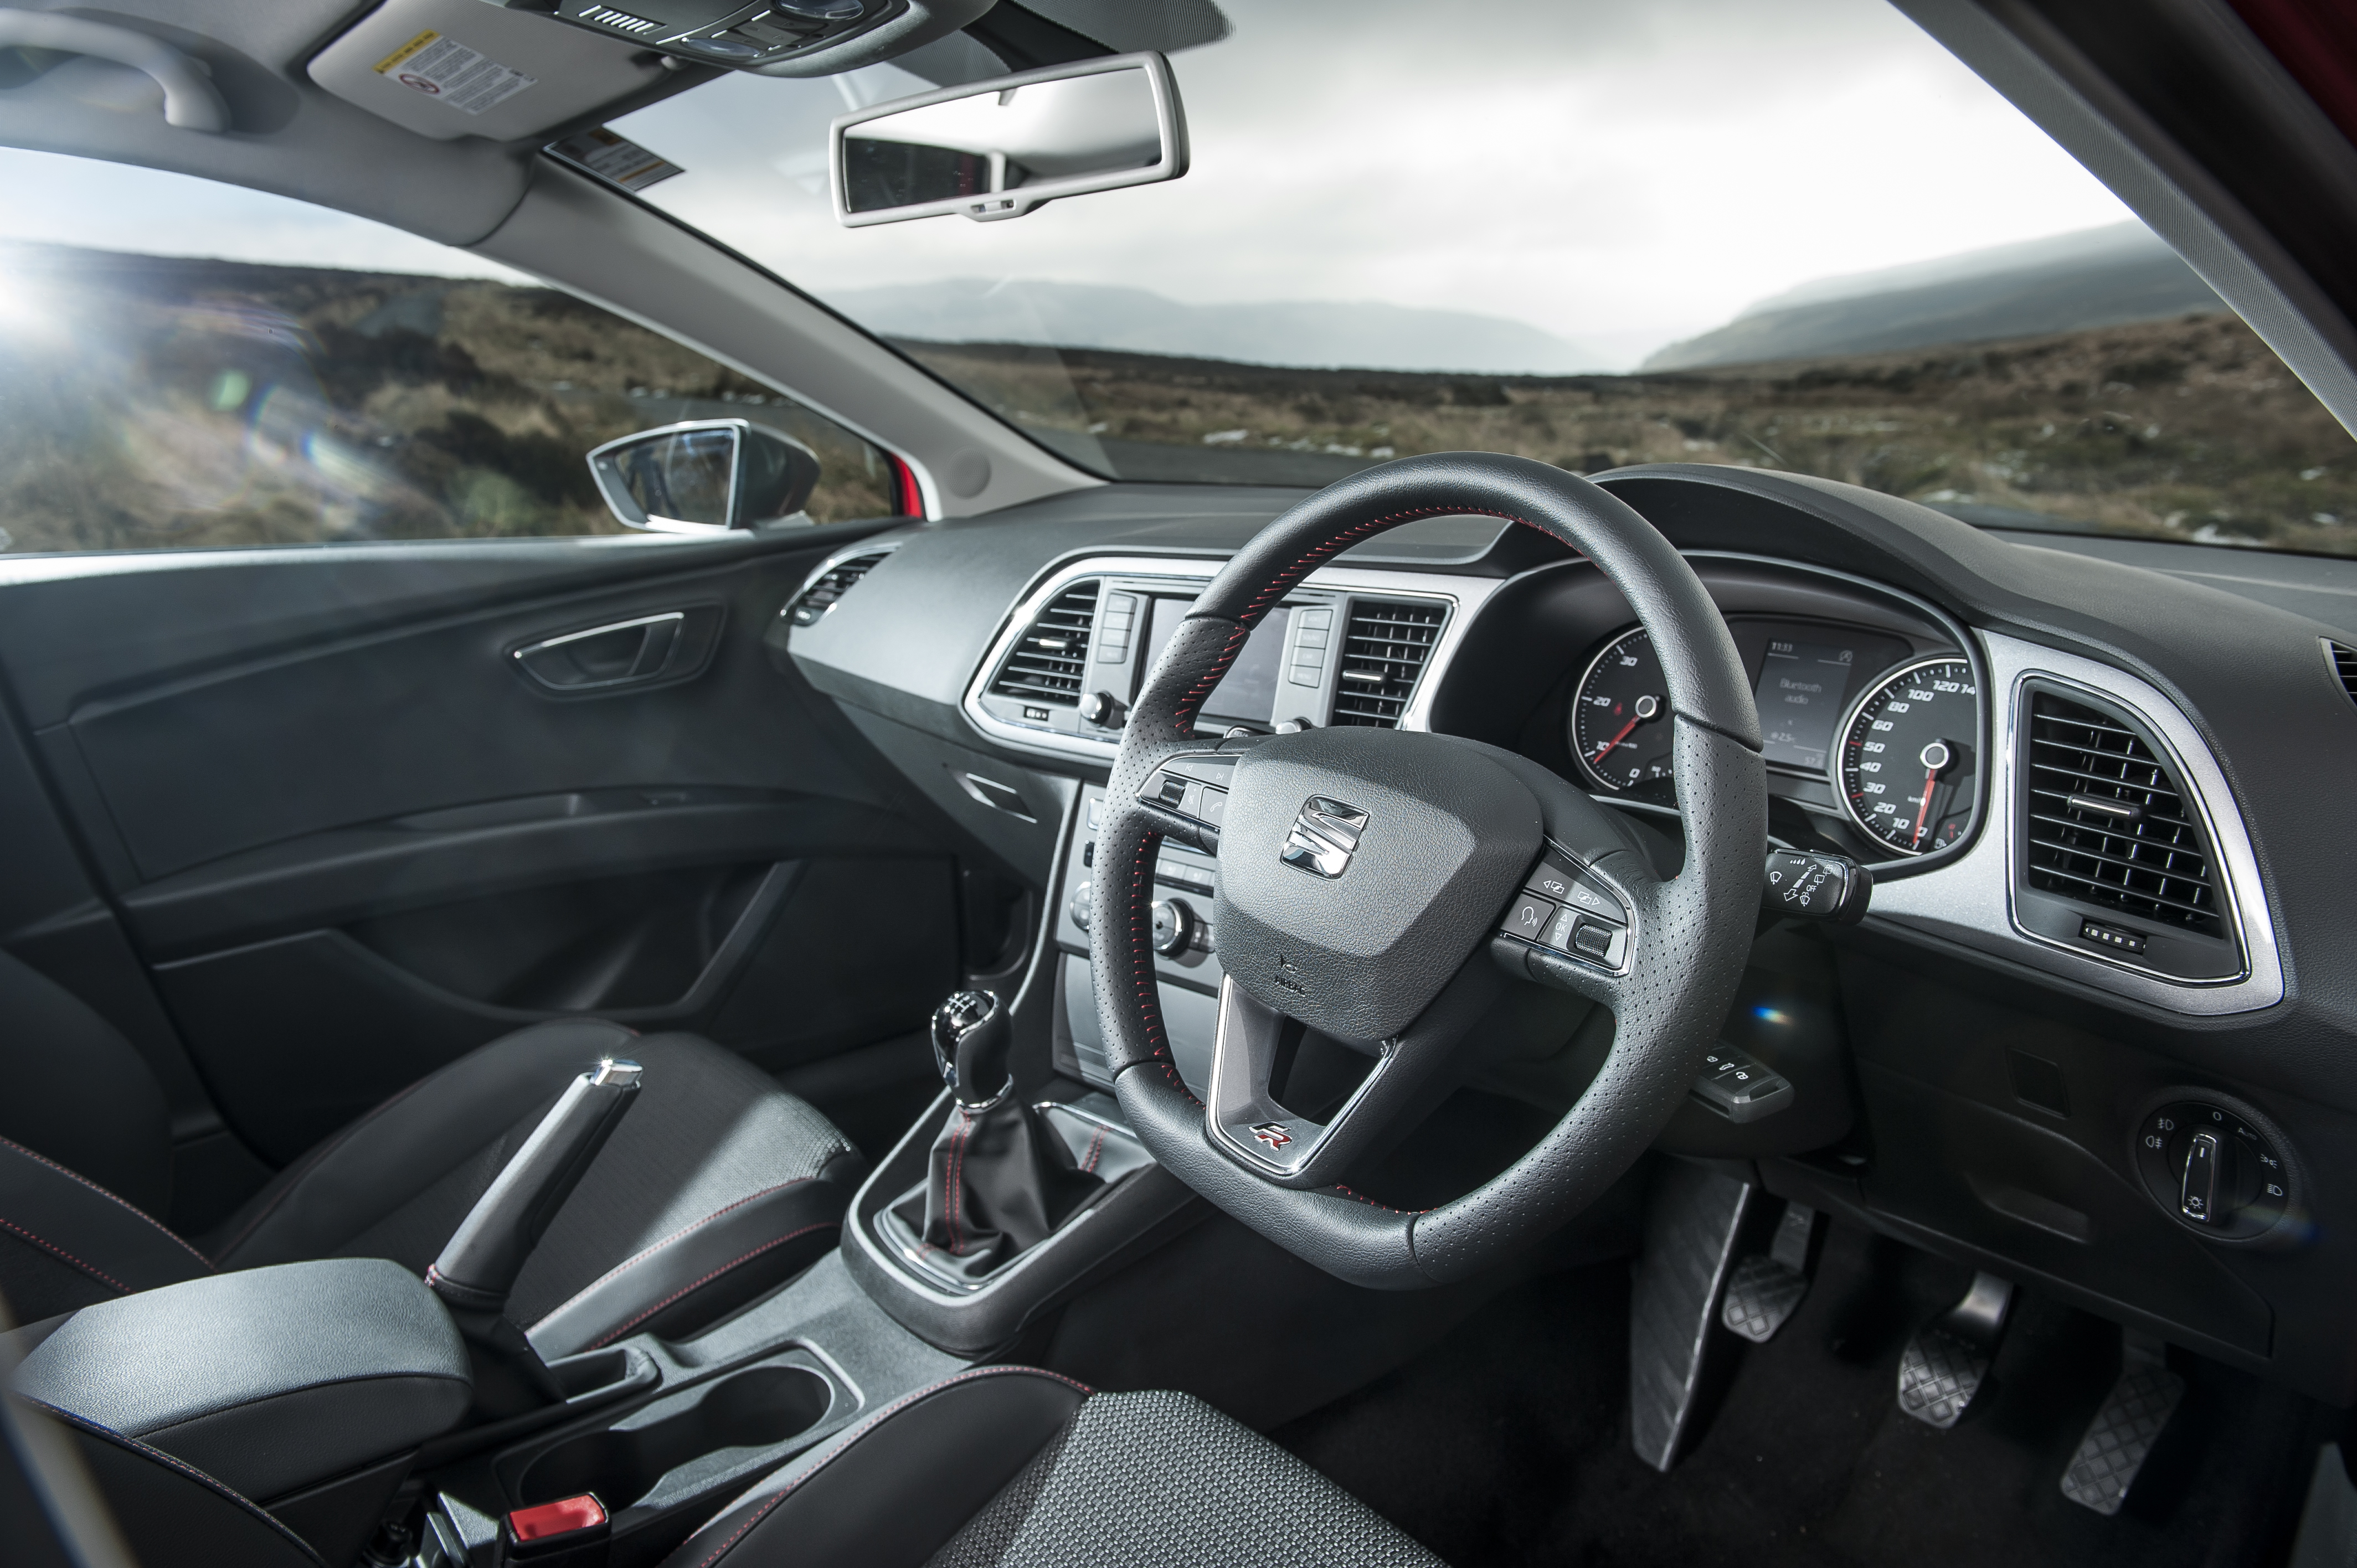 Road Review: Her.ie Drives the SEAT Leon FR – I84hp | Her.ie